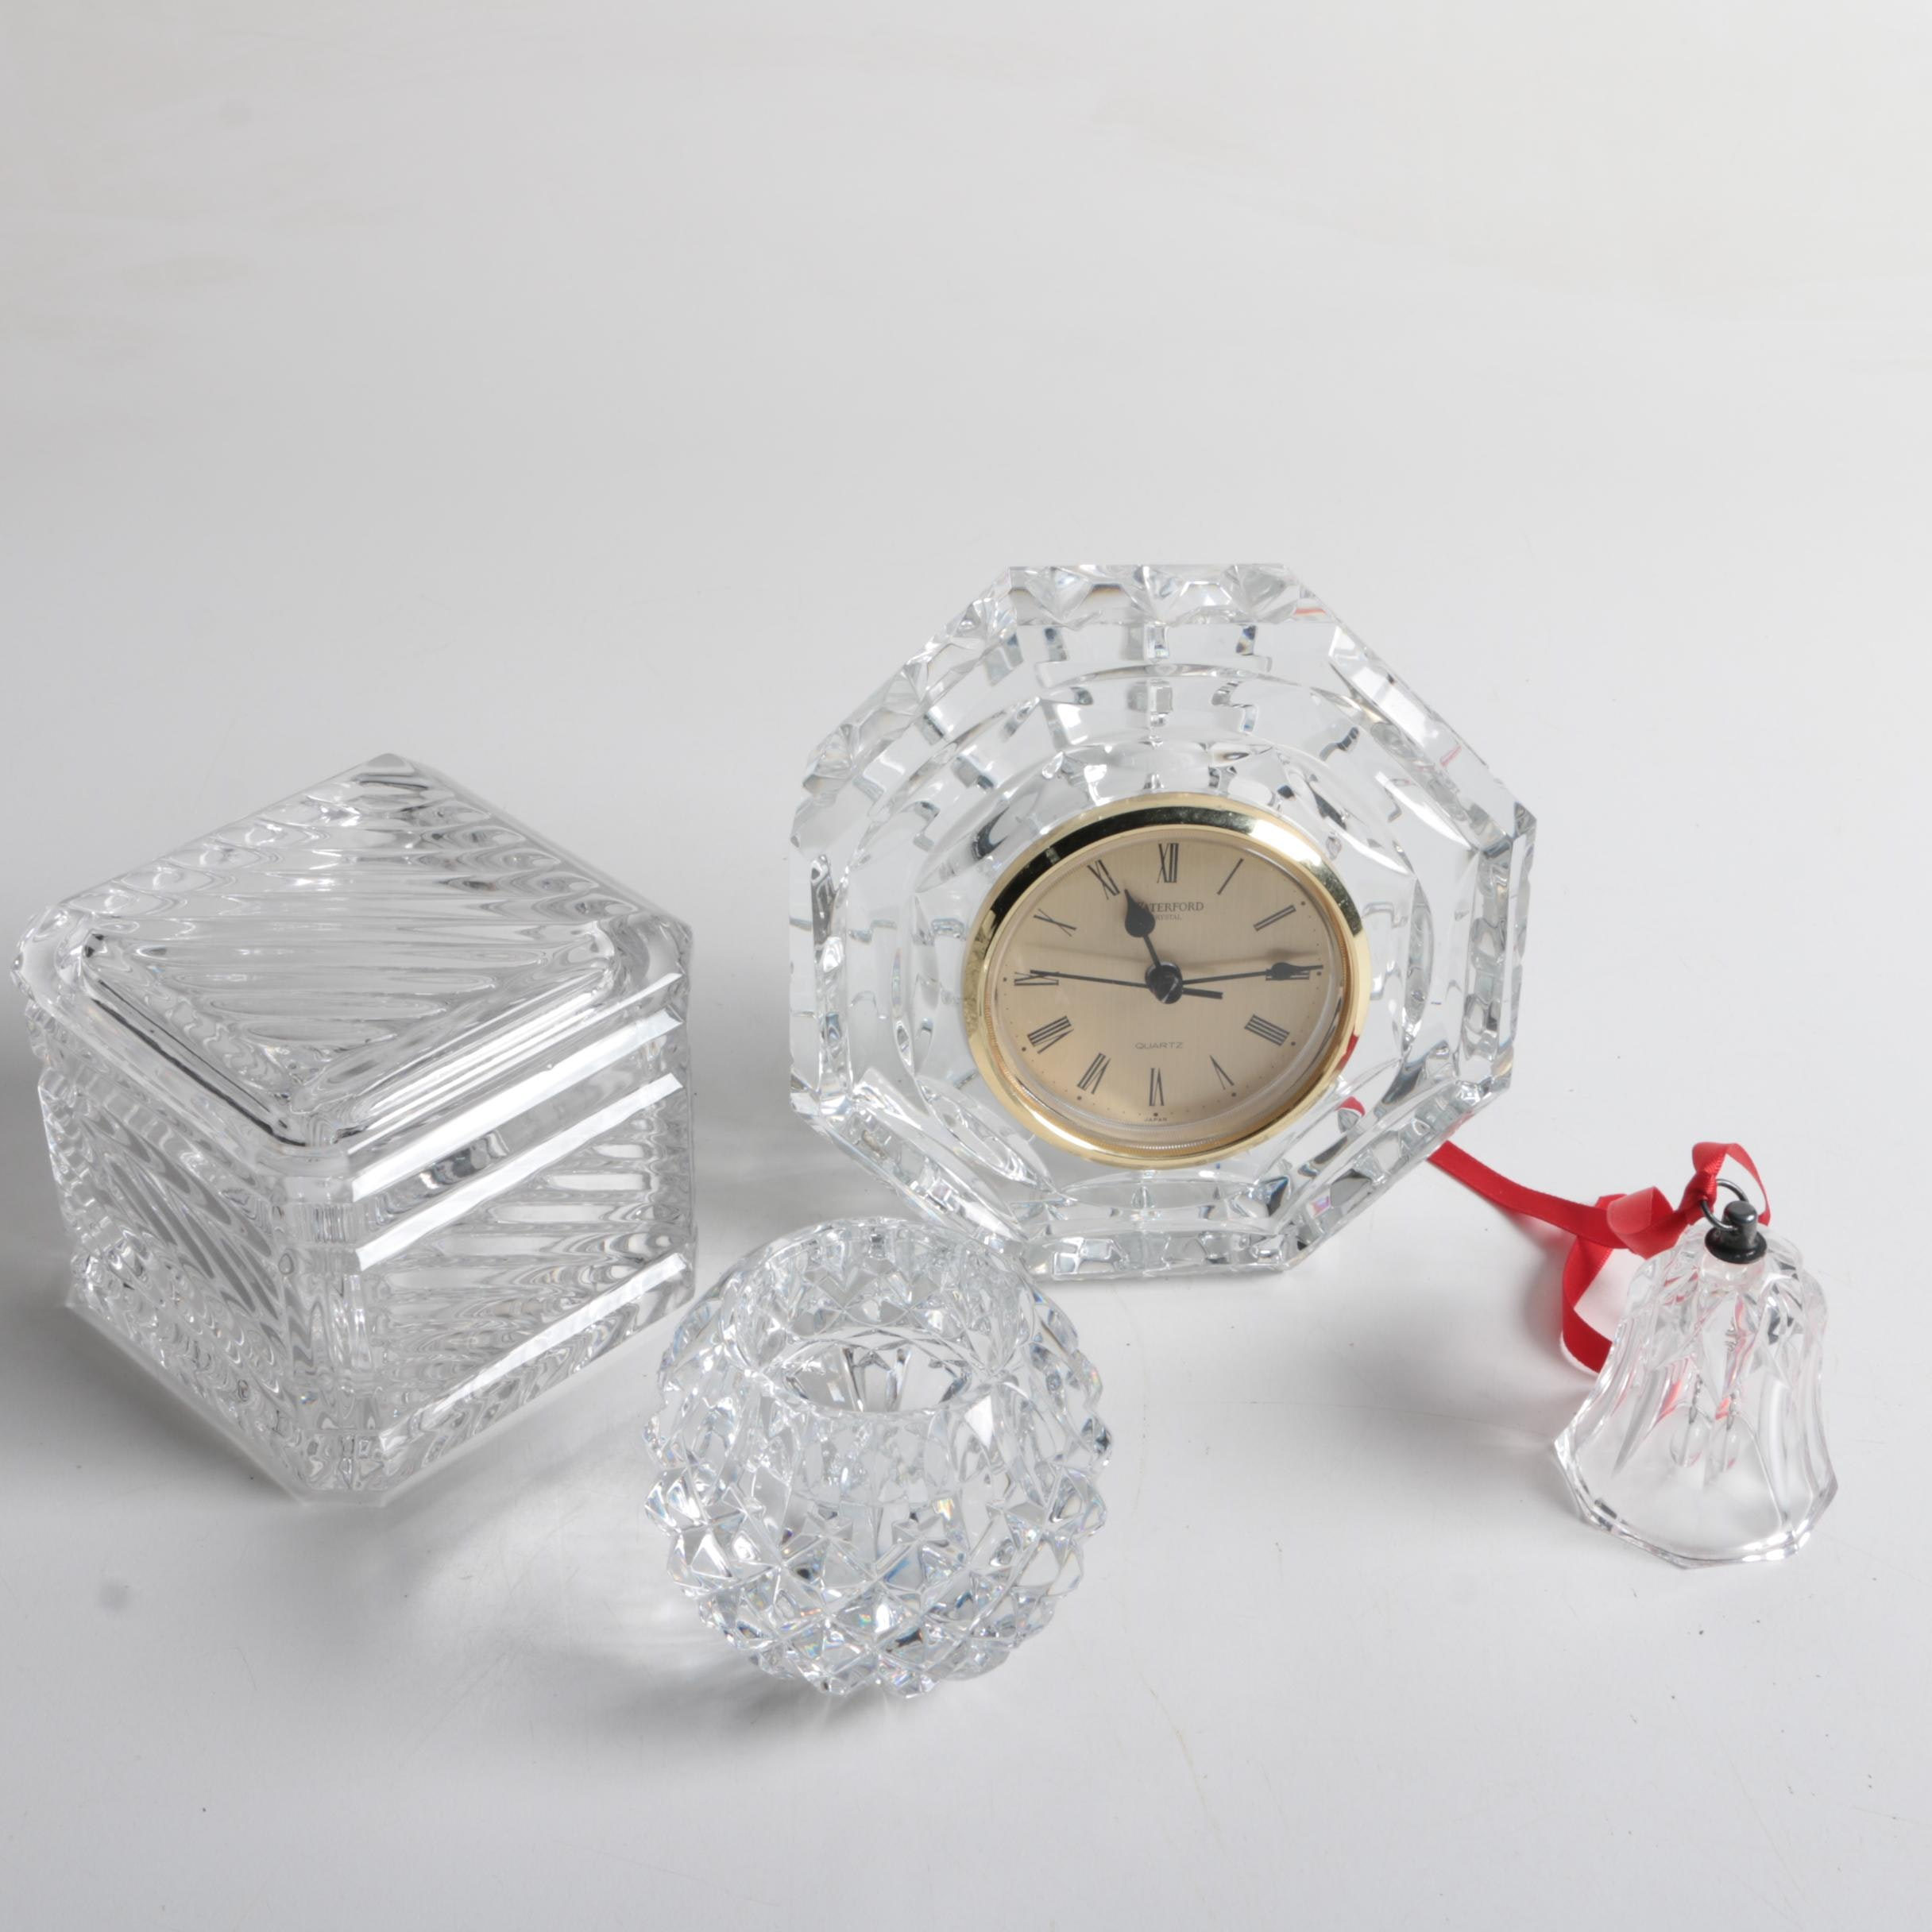 Waterford Clock, Votive and Other Decorative Crystal